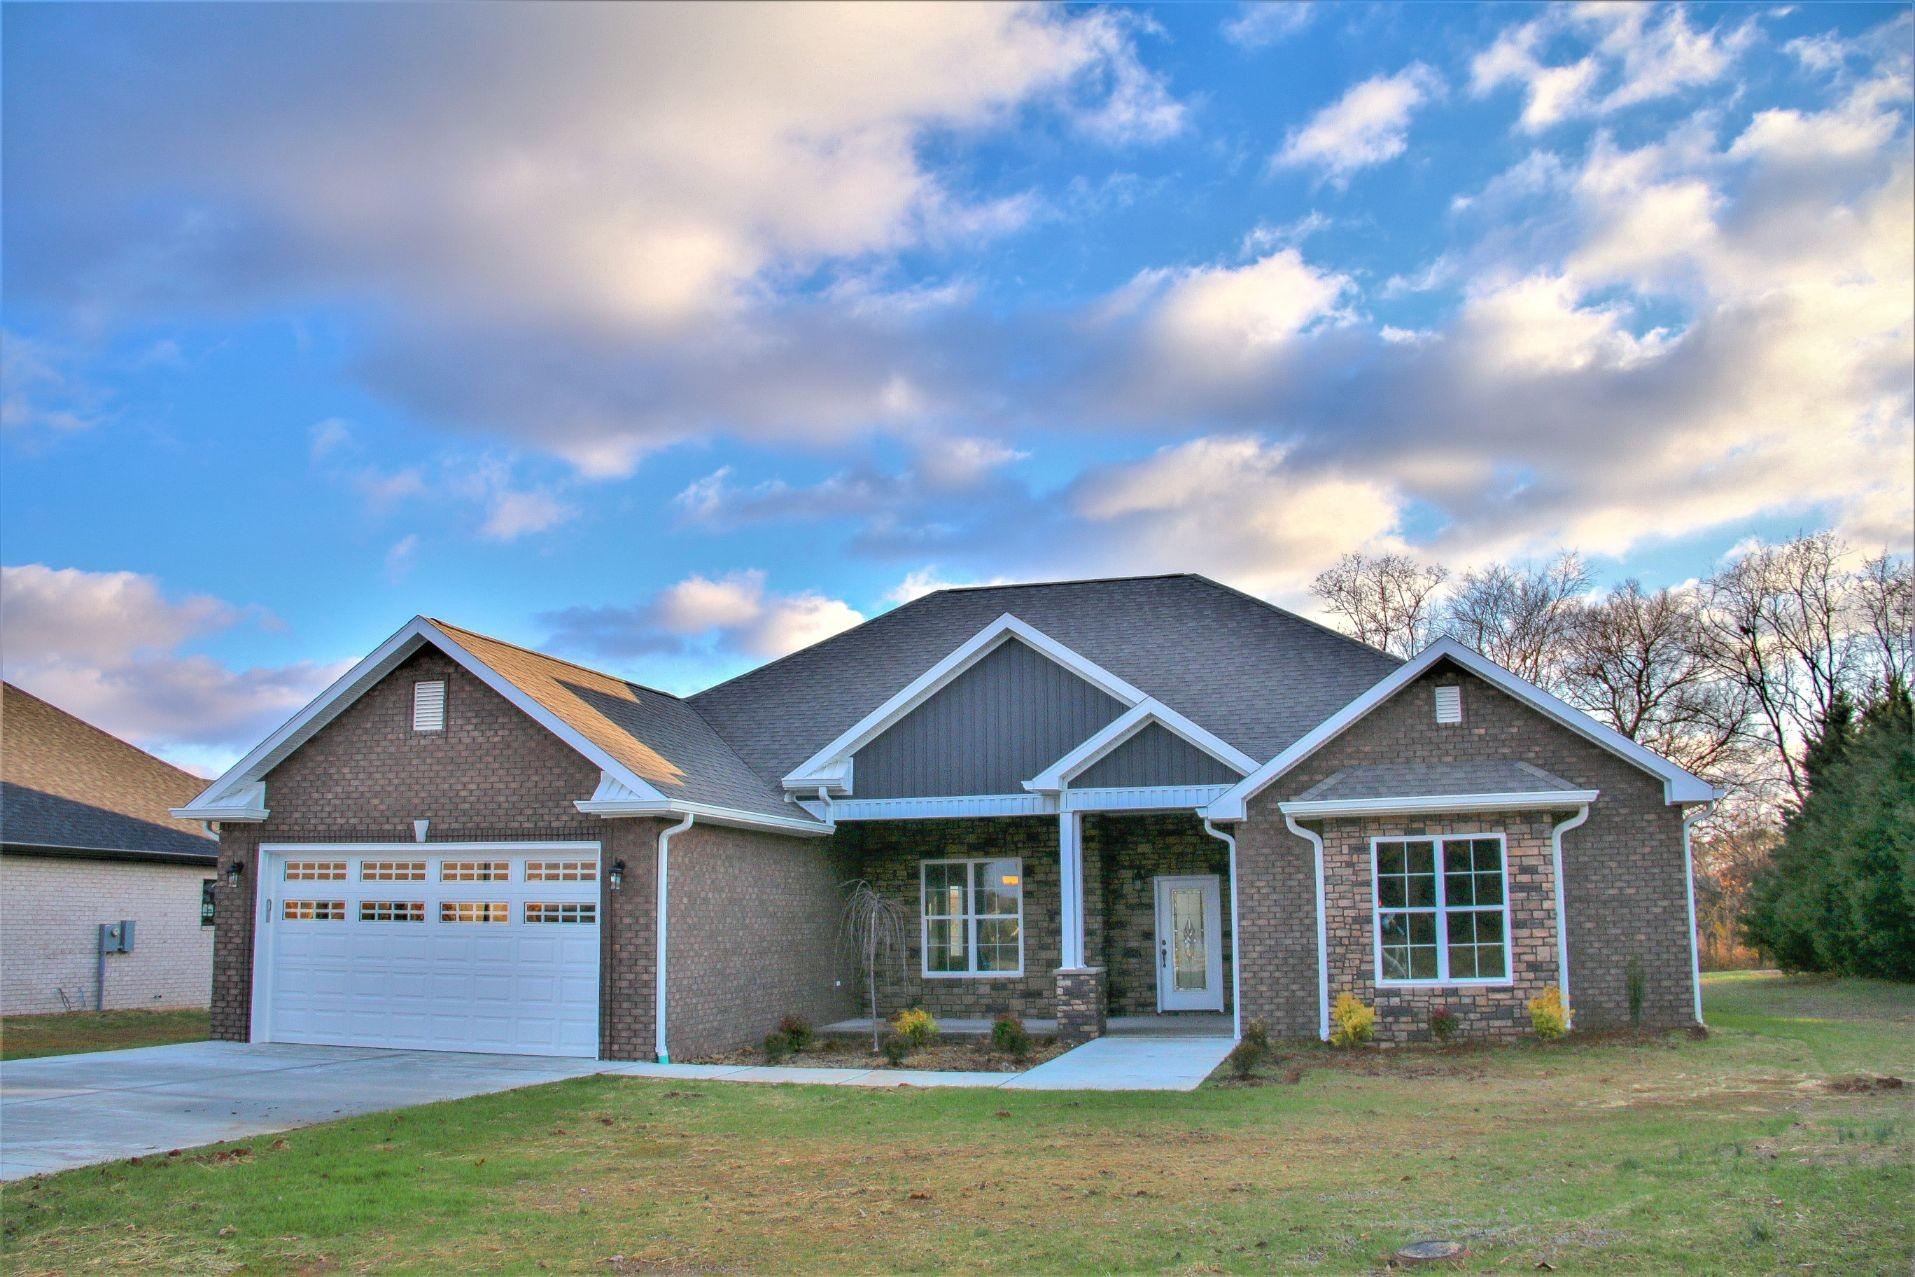 1110 Peachtree Place, Hopkinsville, KY 42240 - Hopkinsville, KY real estate listing